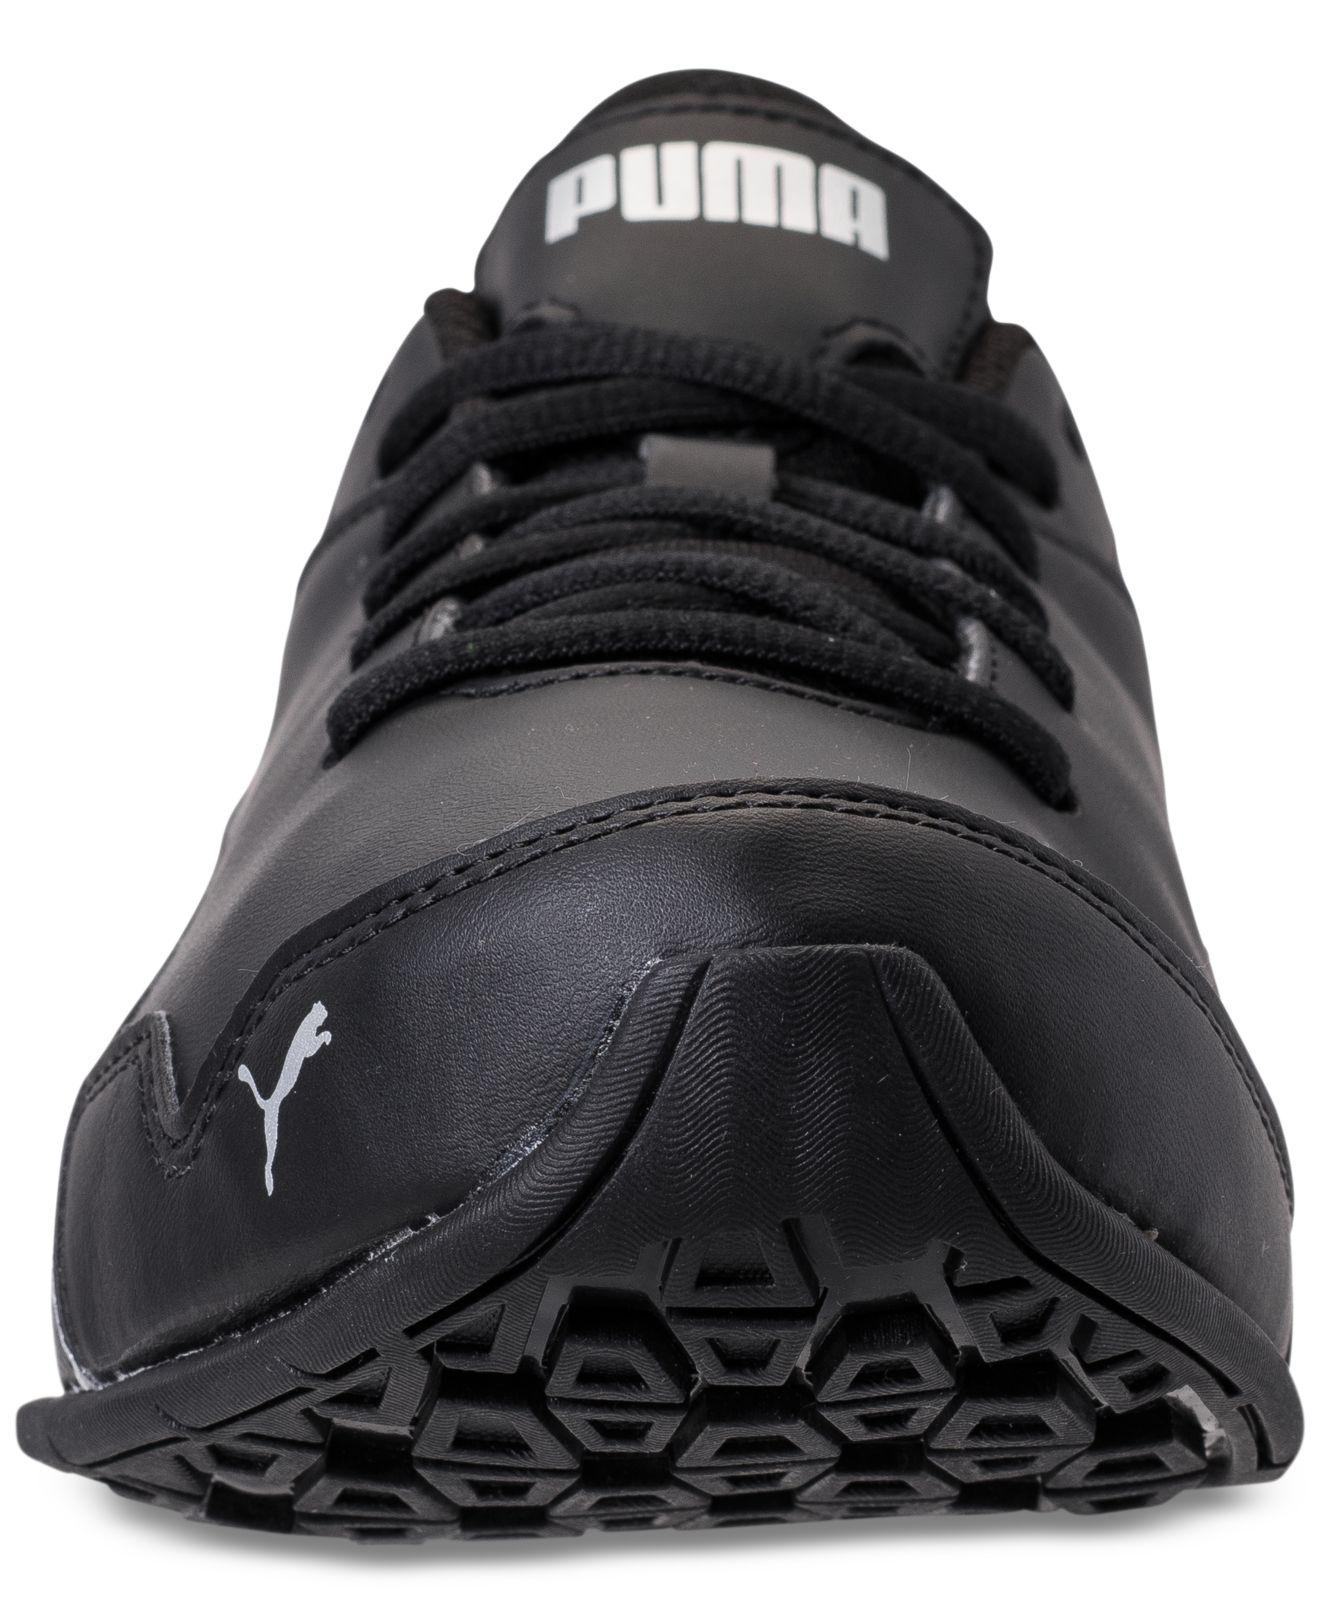 buy online e6750 2a6ce ... Shoes Finish Line PUMA Black Mens Super Levitate Running Sneakers From  Finish Line for Men Lyst.